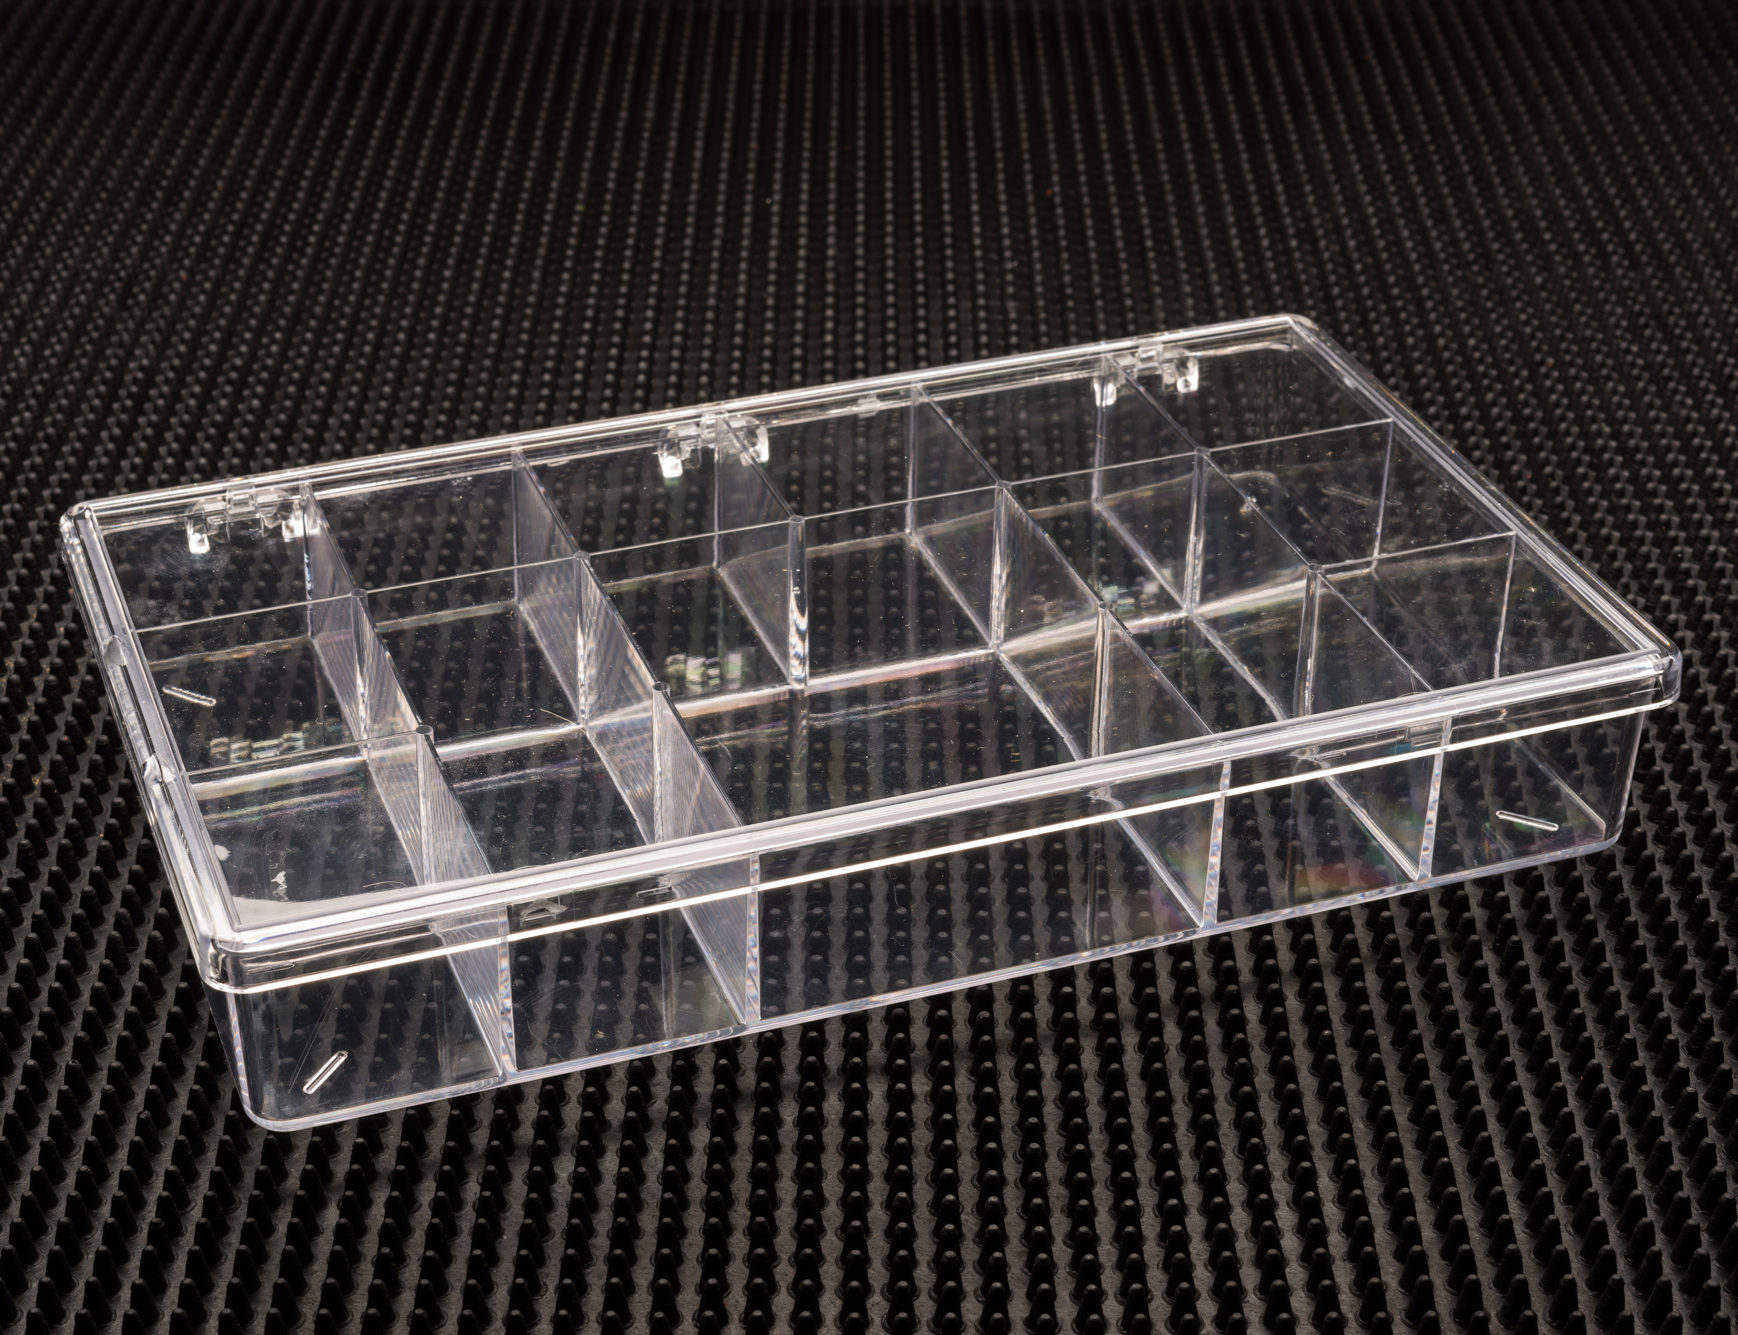 13 Compartment Clear Plastic Boxes (786C-13)